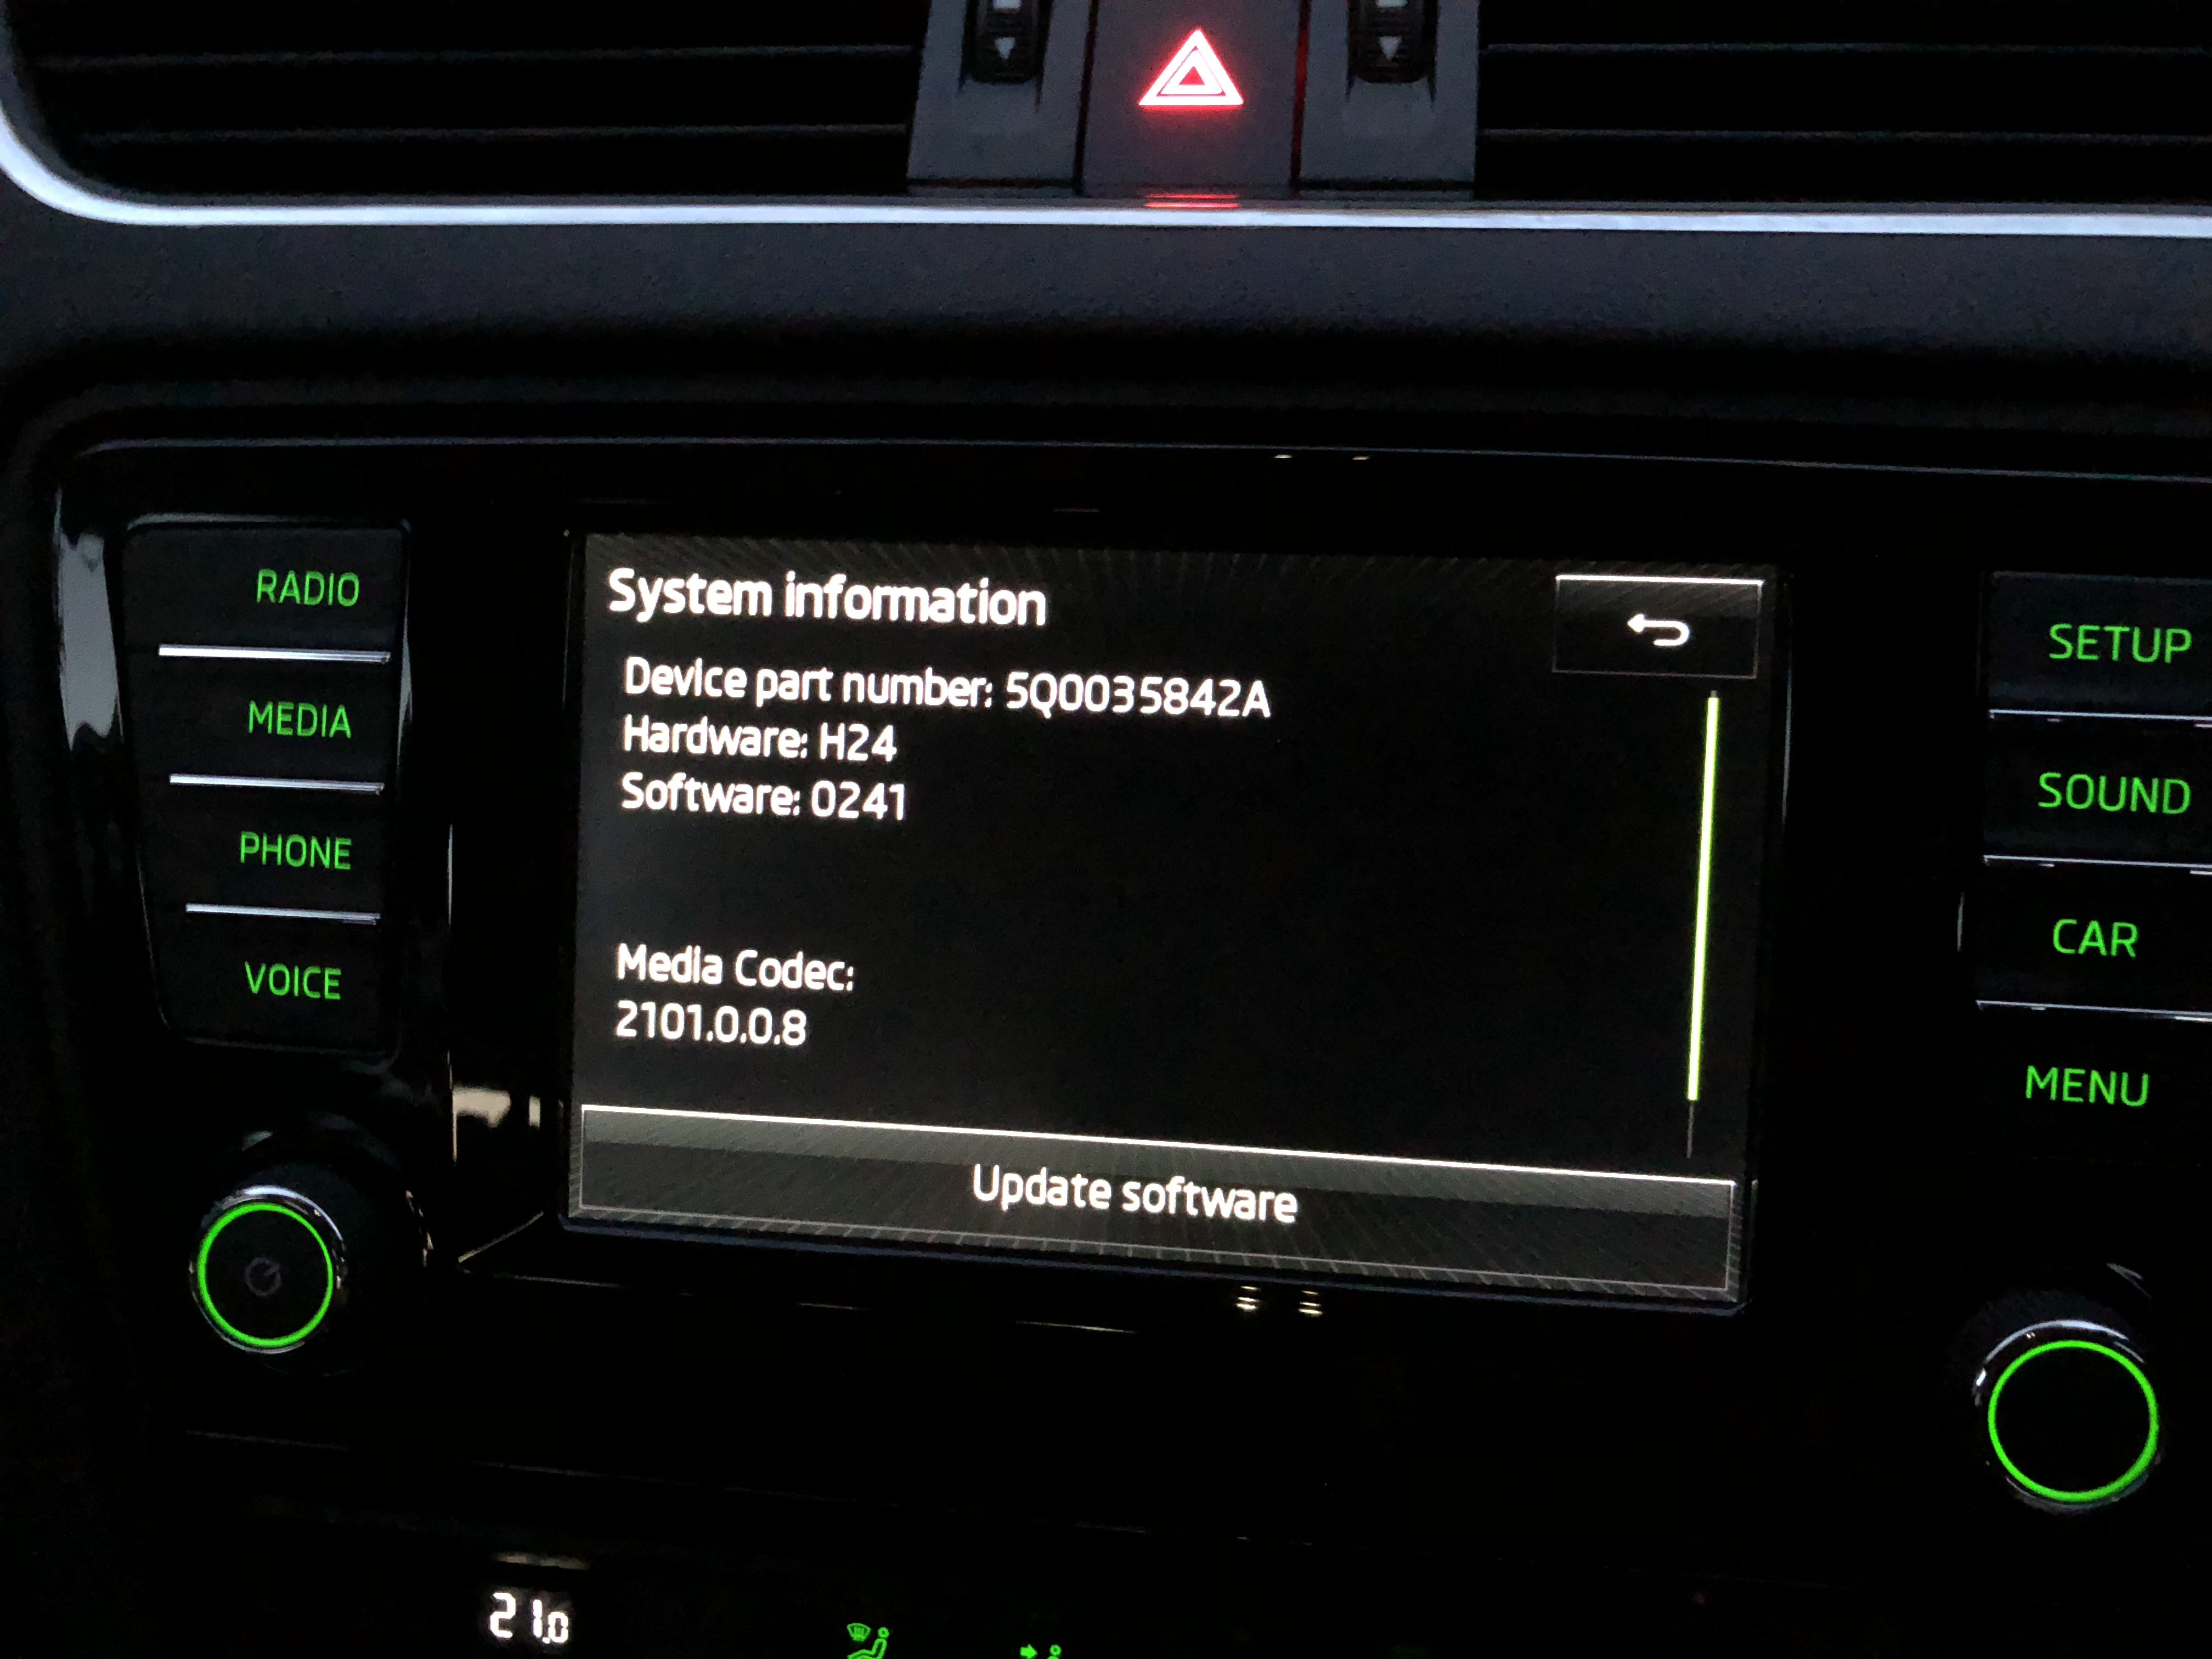 Enable SmartLink - Skoda Octavia Mk III (2013 onward) - BRISKODA